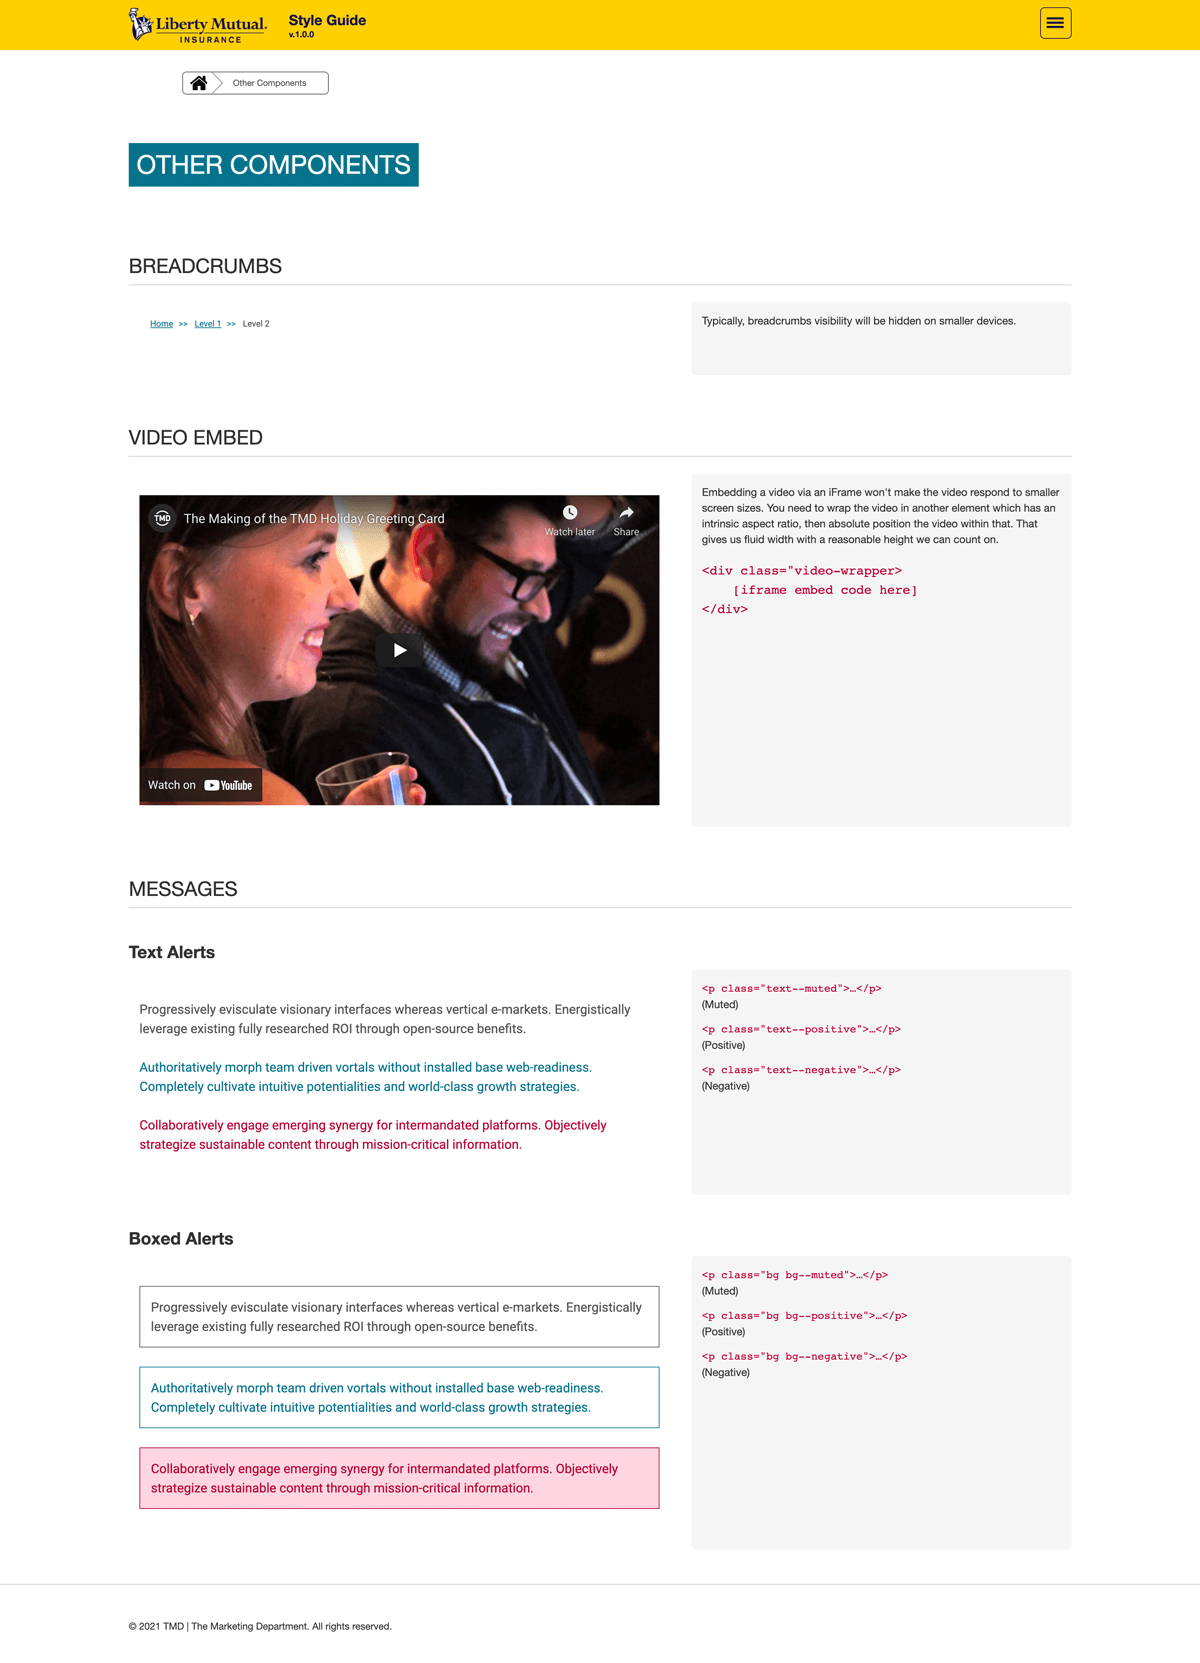 Style guide components page